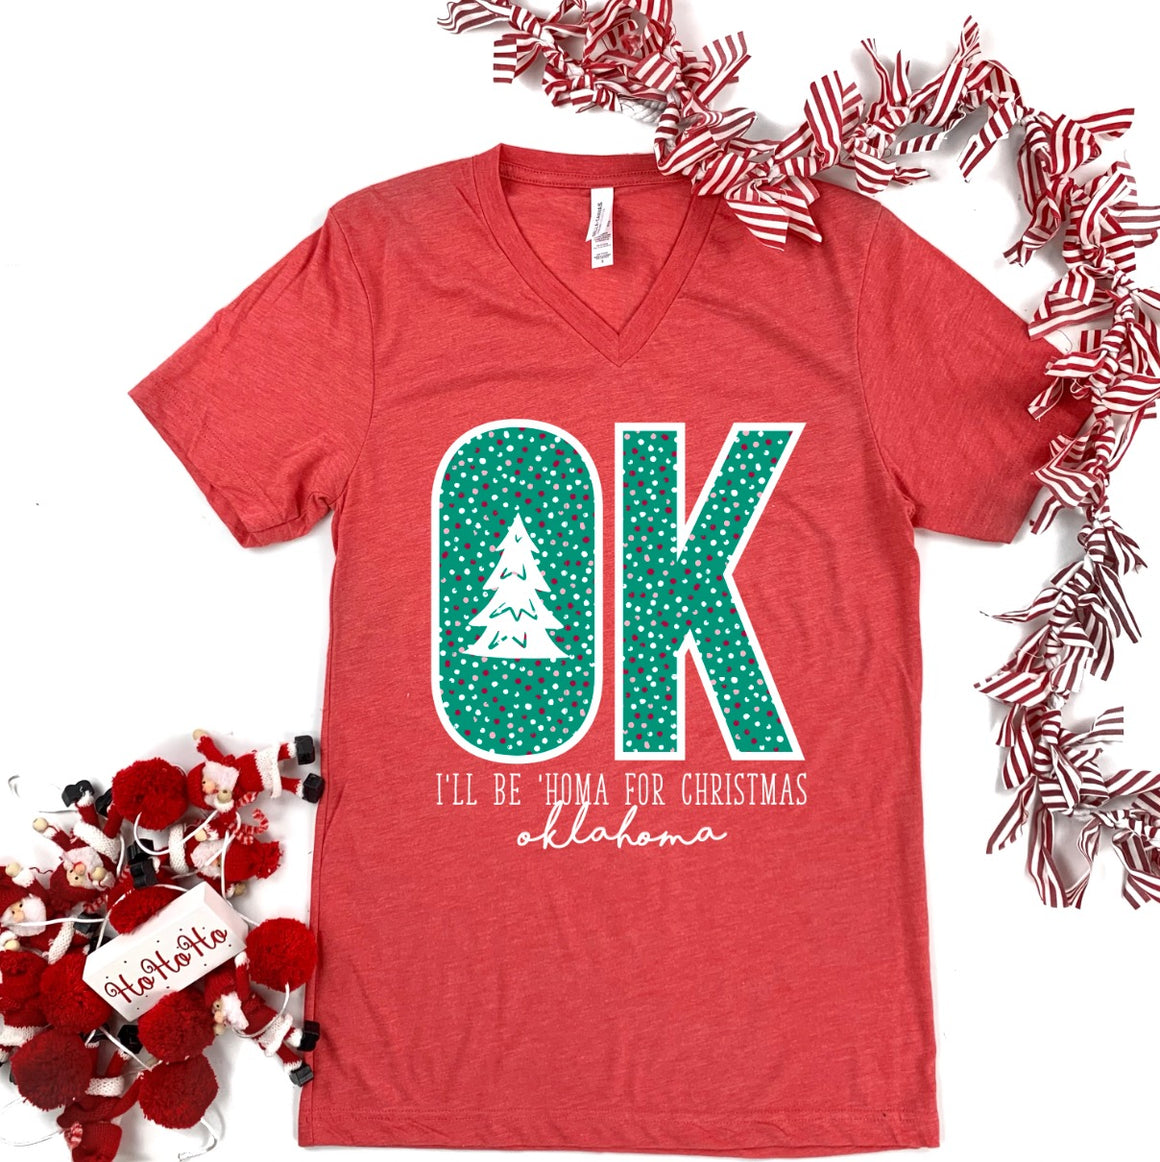 """I'LL BE 'HOMA FOR CHRISTMAS"" (BELLA CANVAS V-NECK)"